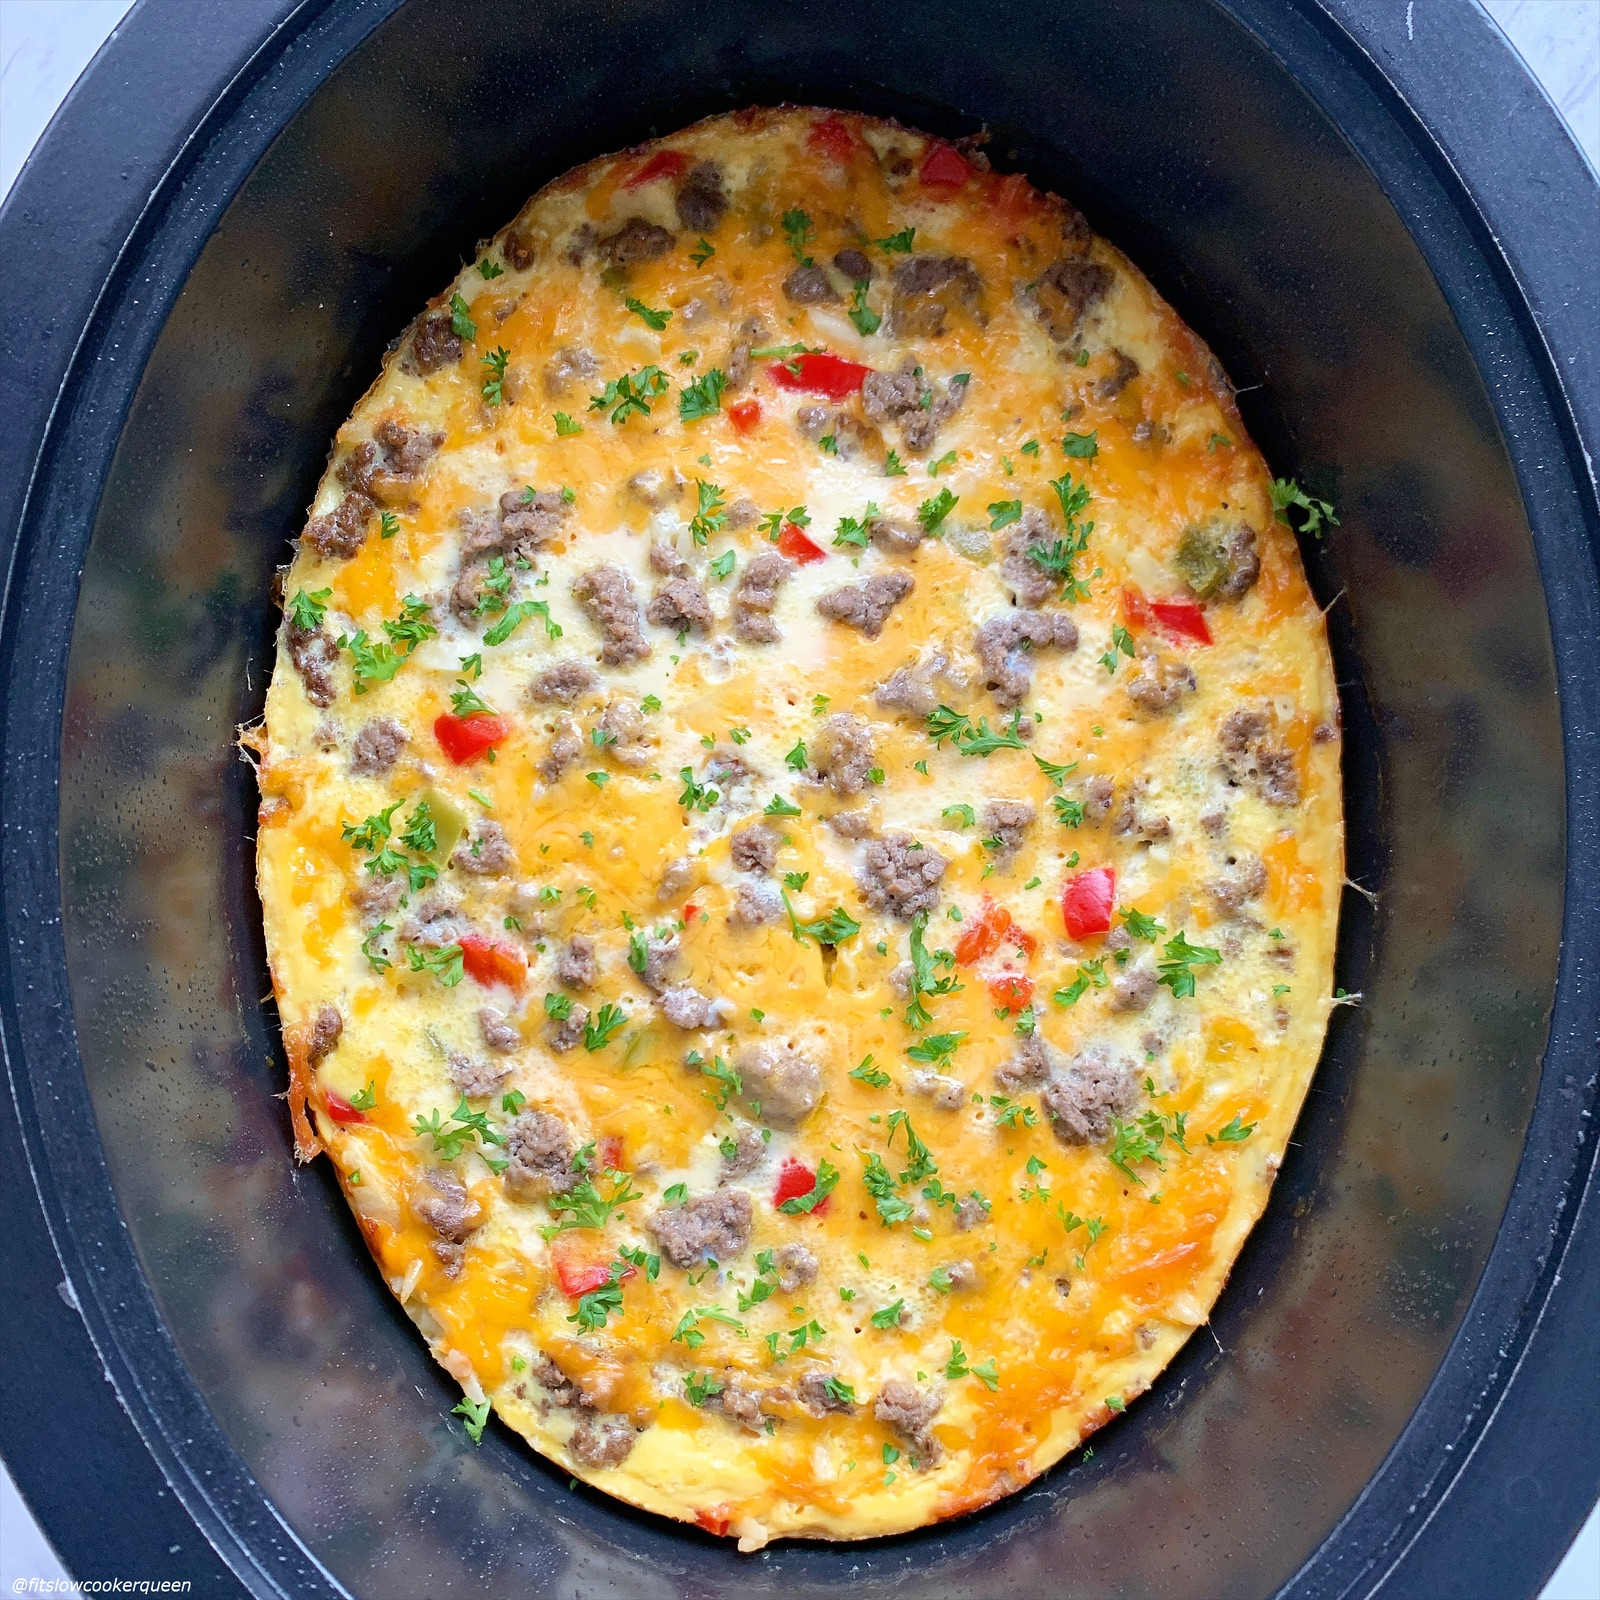 cooled egg casserole in the slow cooker